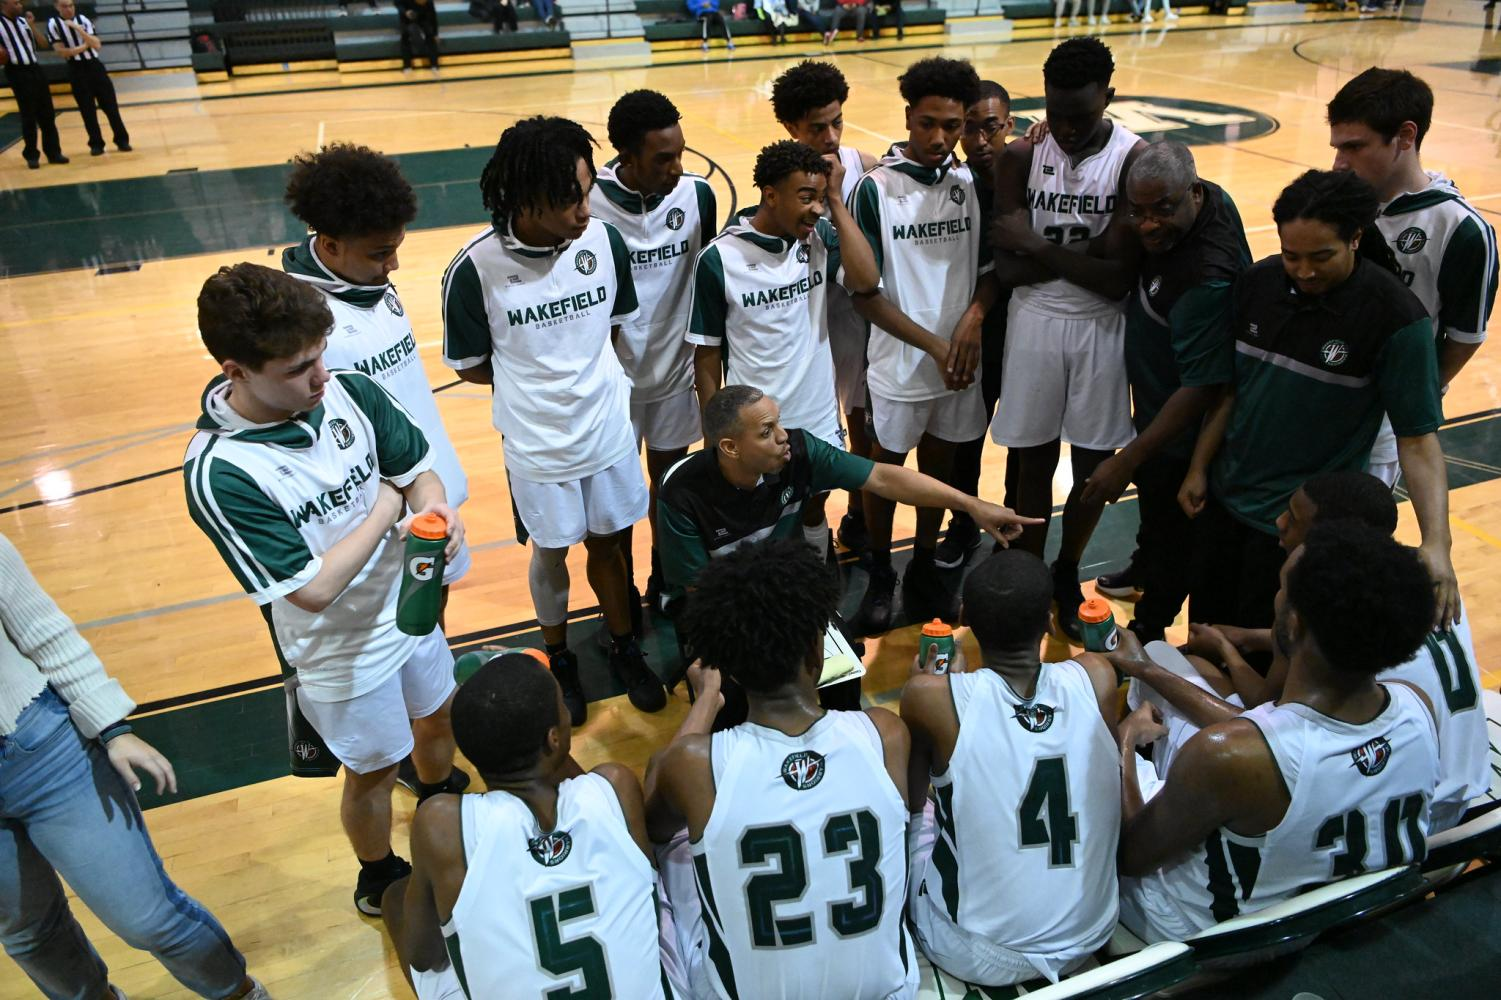 The team in a huddle at Wakefield vs. Marshall earlier this season.